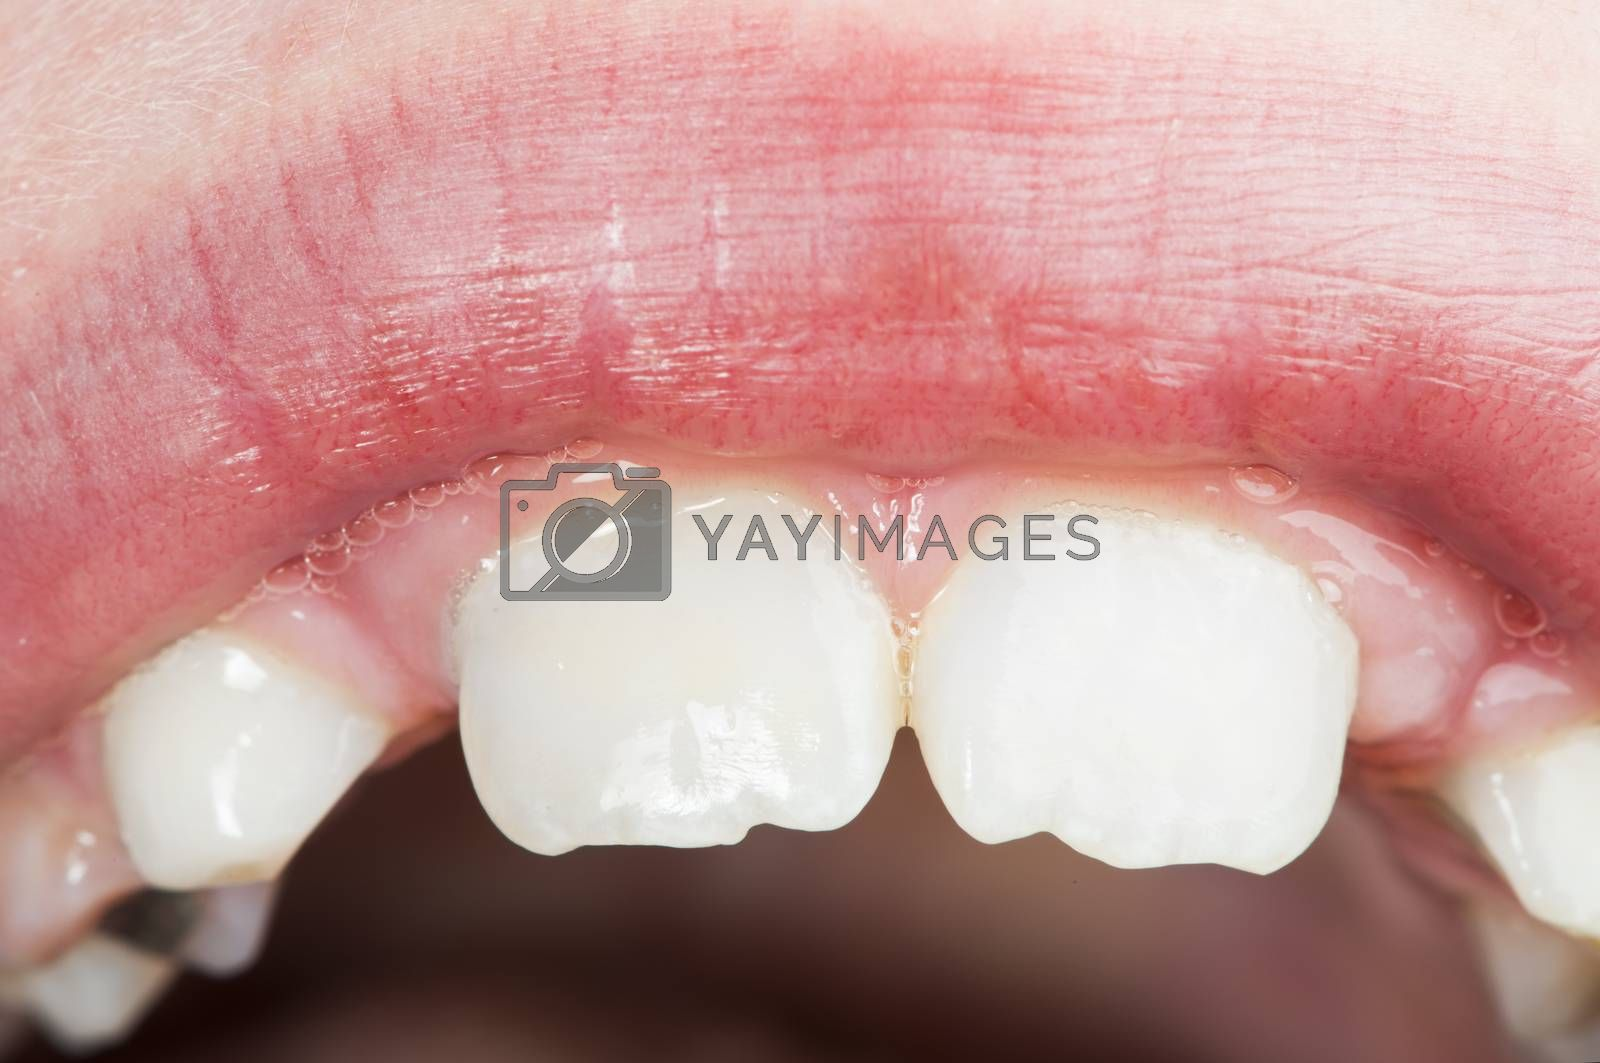 Children's mouth and teeth. Close up studio shot.